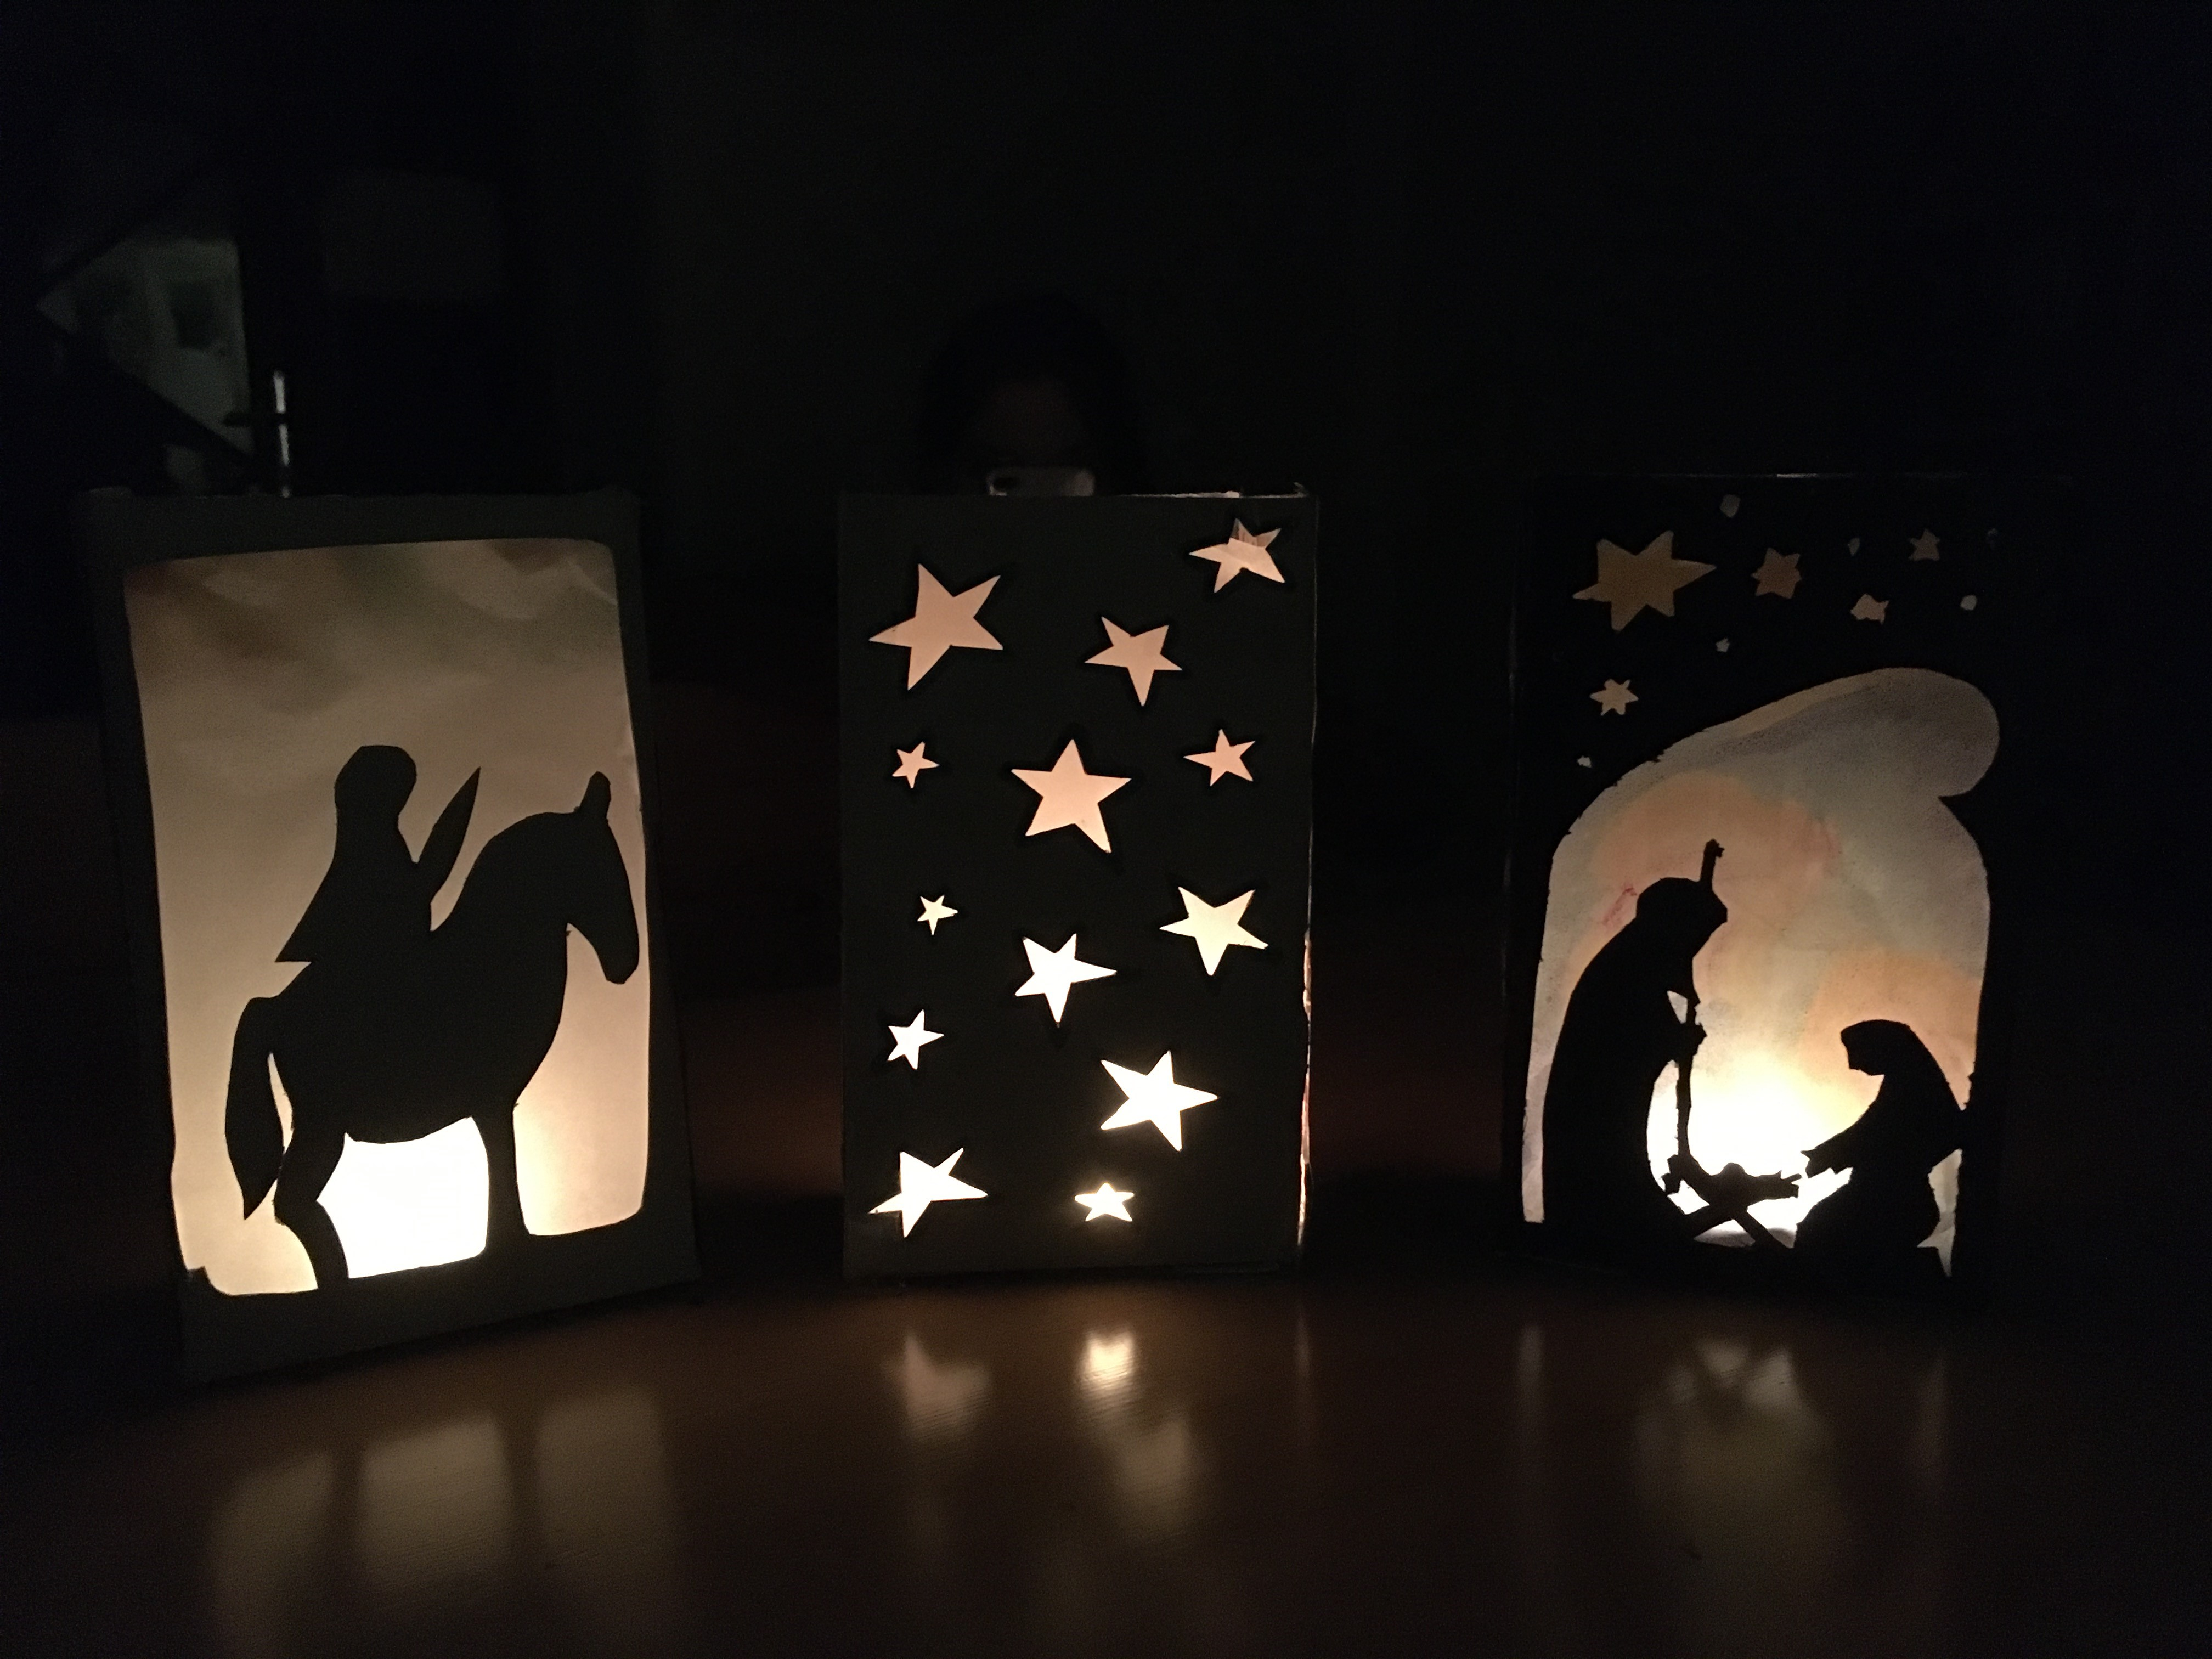 I enjoyed crafting these lanterns. (c) Anna Whitehead.